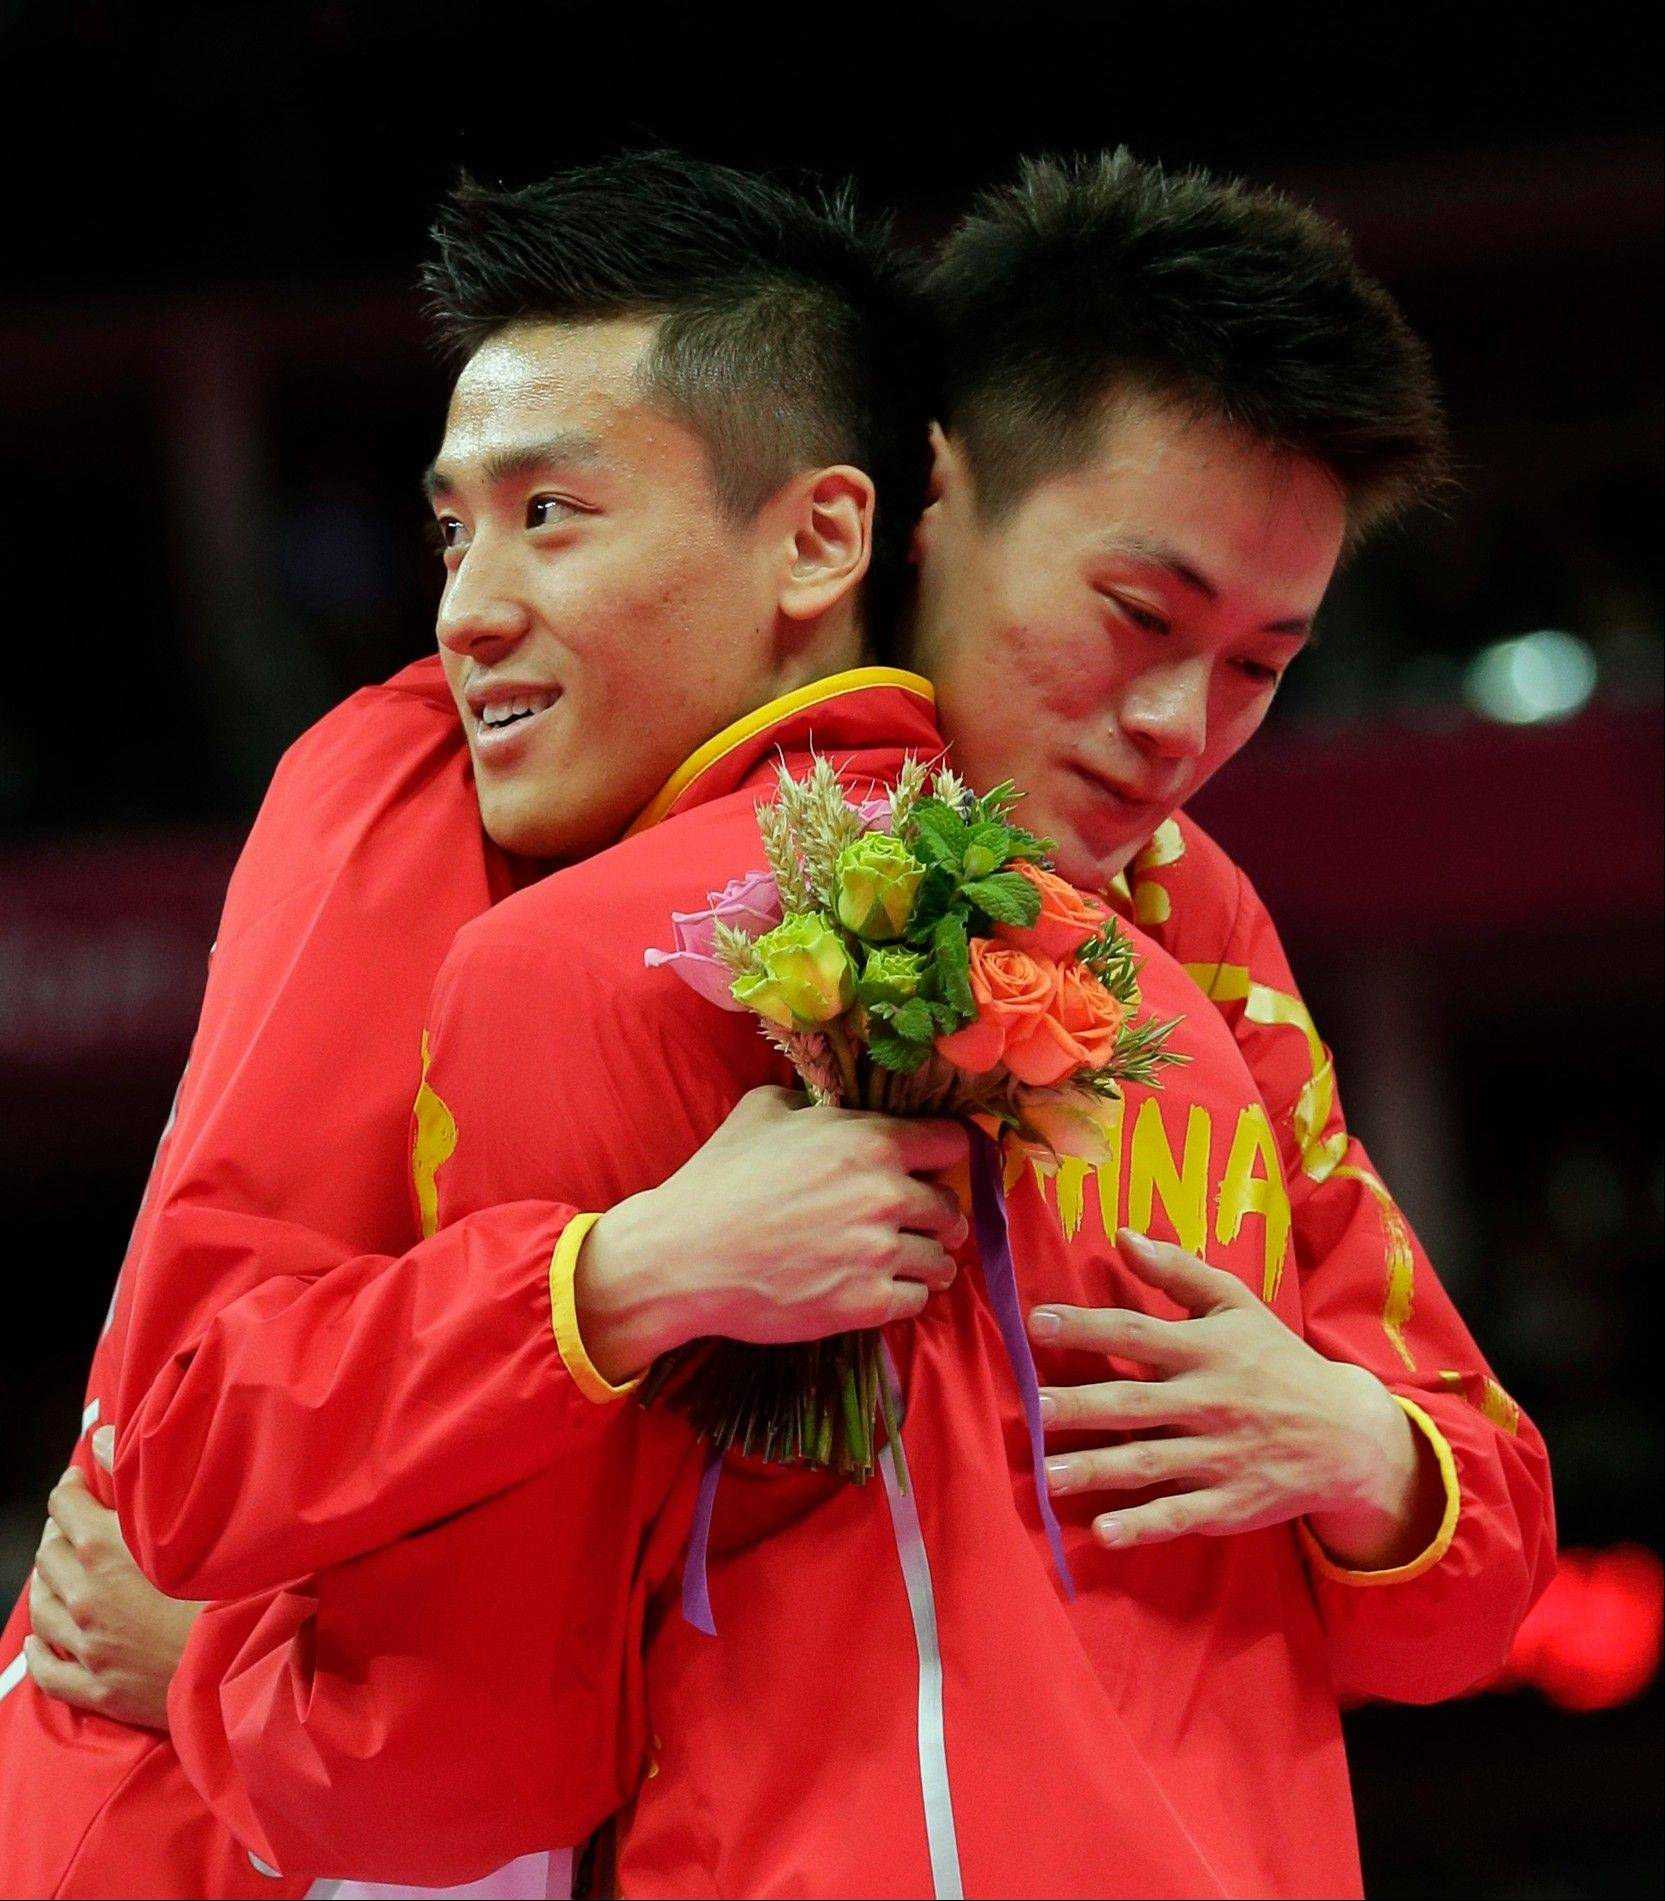 Gold medallist China's Dong Dong, right, and teammate bronze medallist Lu Chunlong hug during the medal ceremony of the men's trampoline finals at the 2012 Summer Olympics, Friday, Aug. 3, 2012, in London.